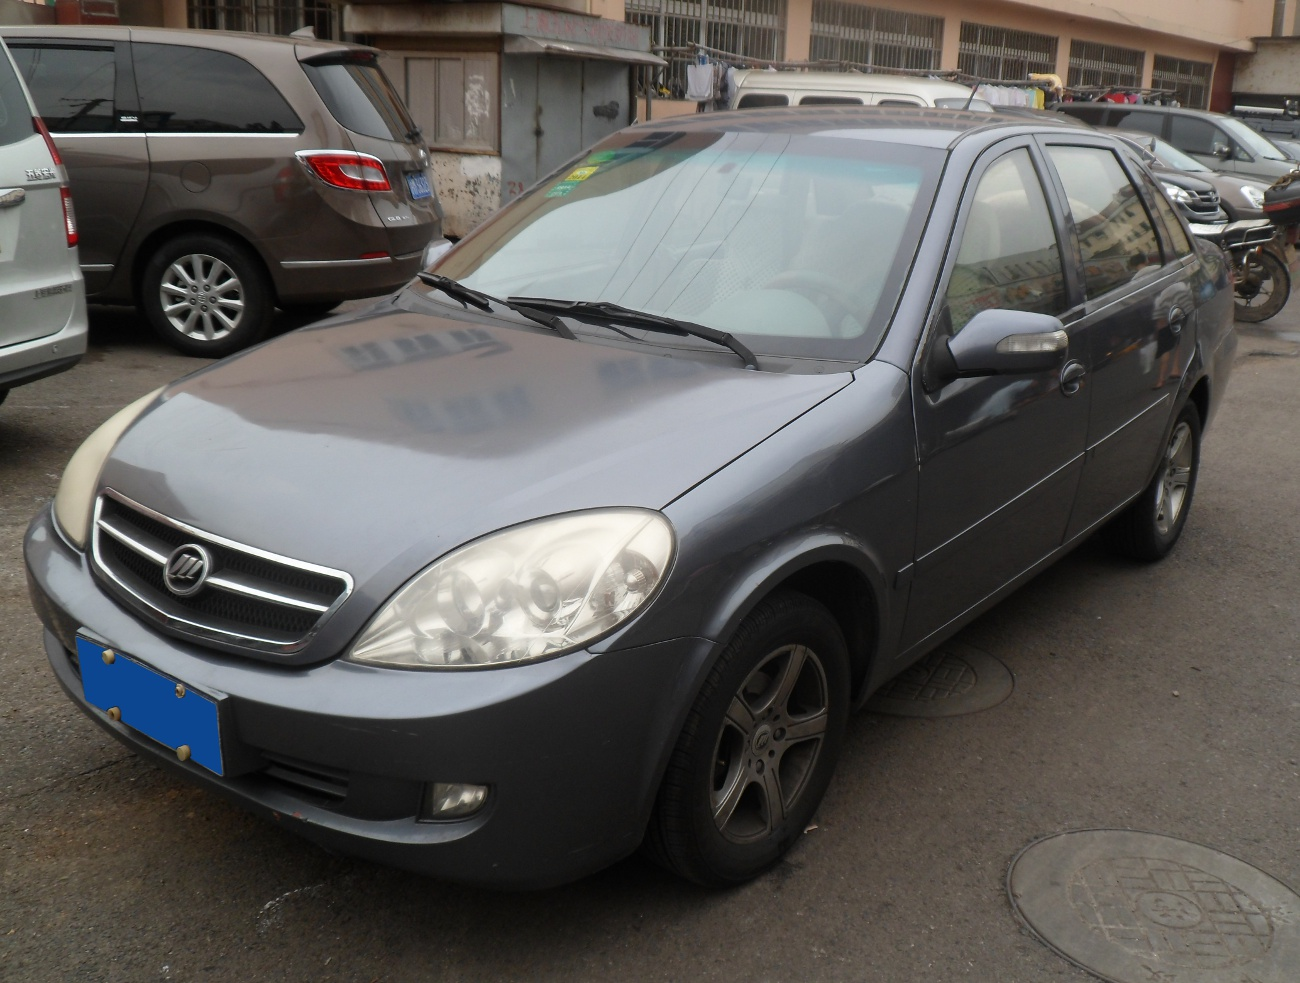 lifan 520 images #3